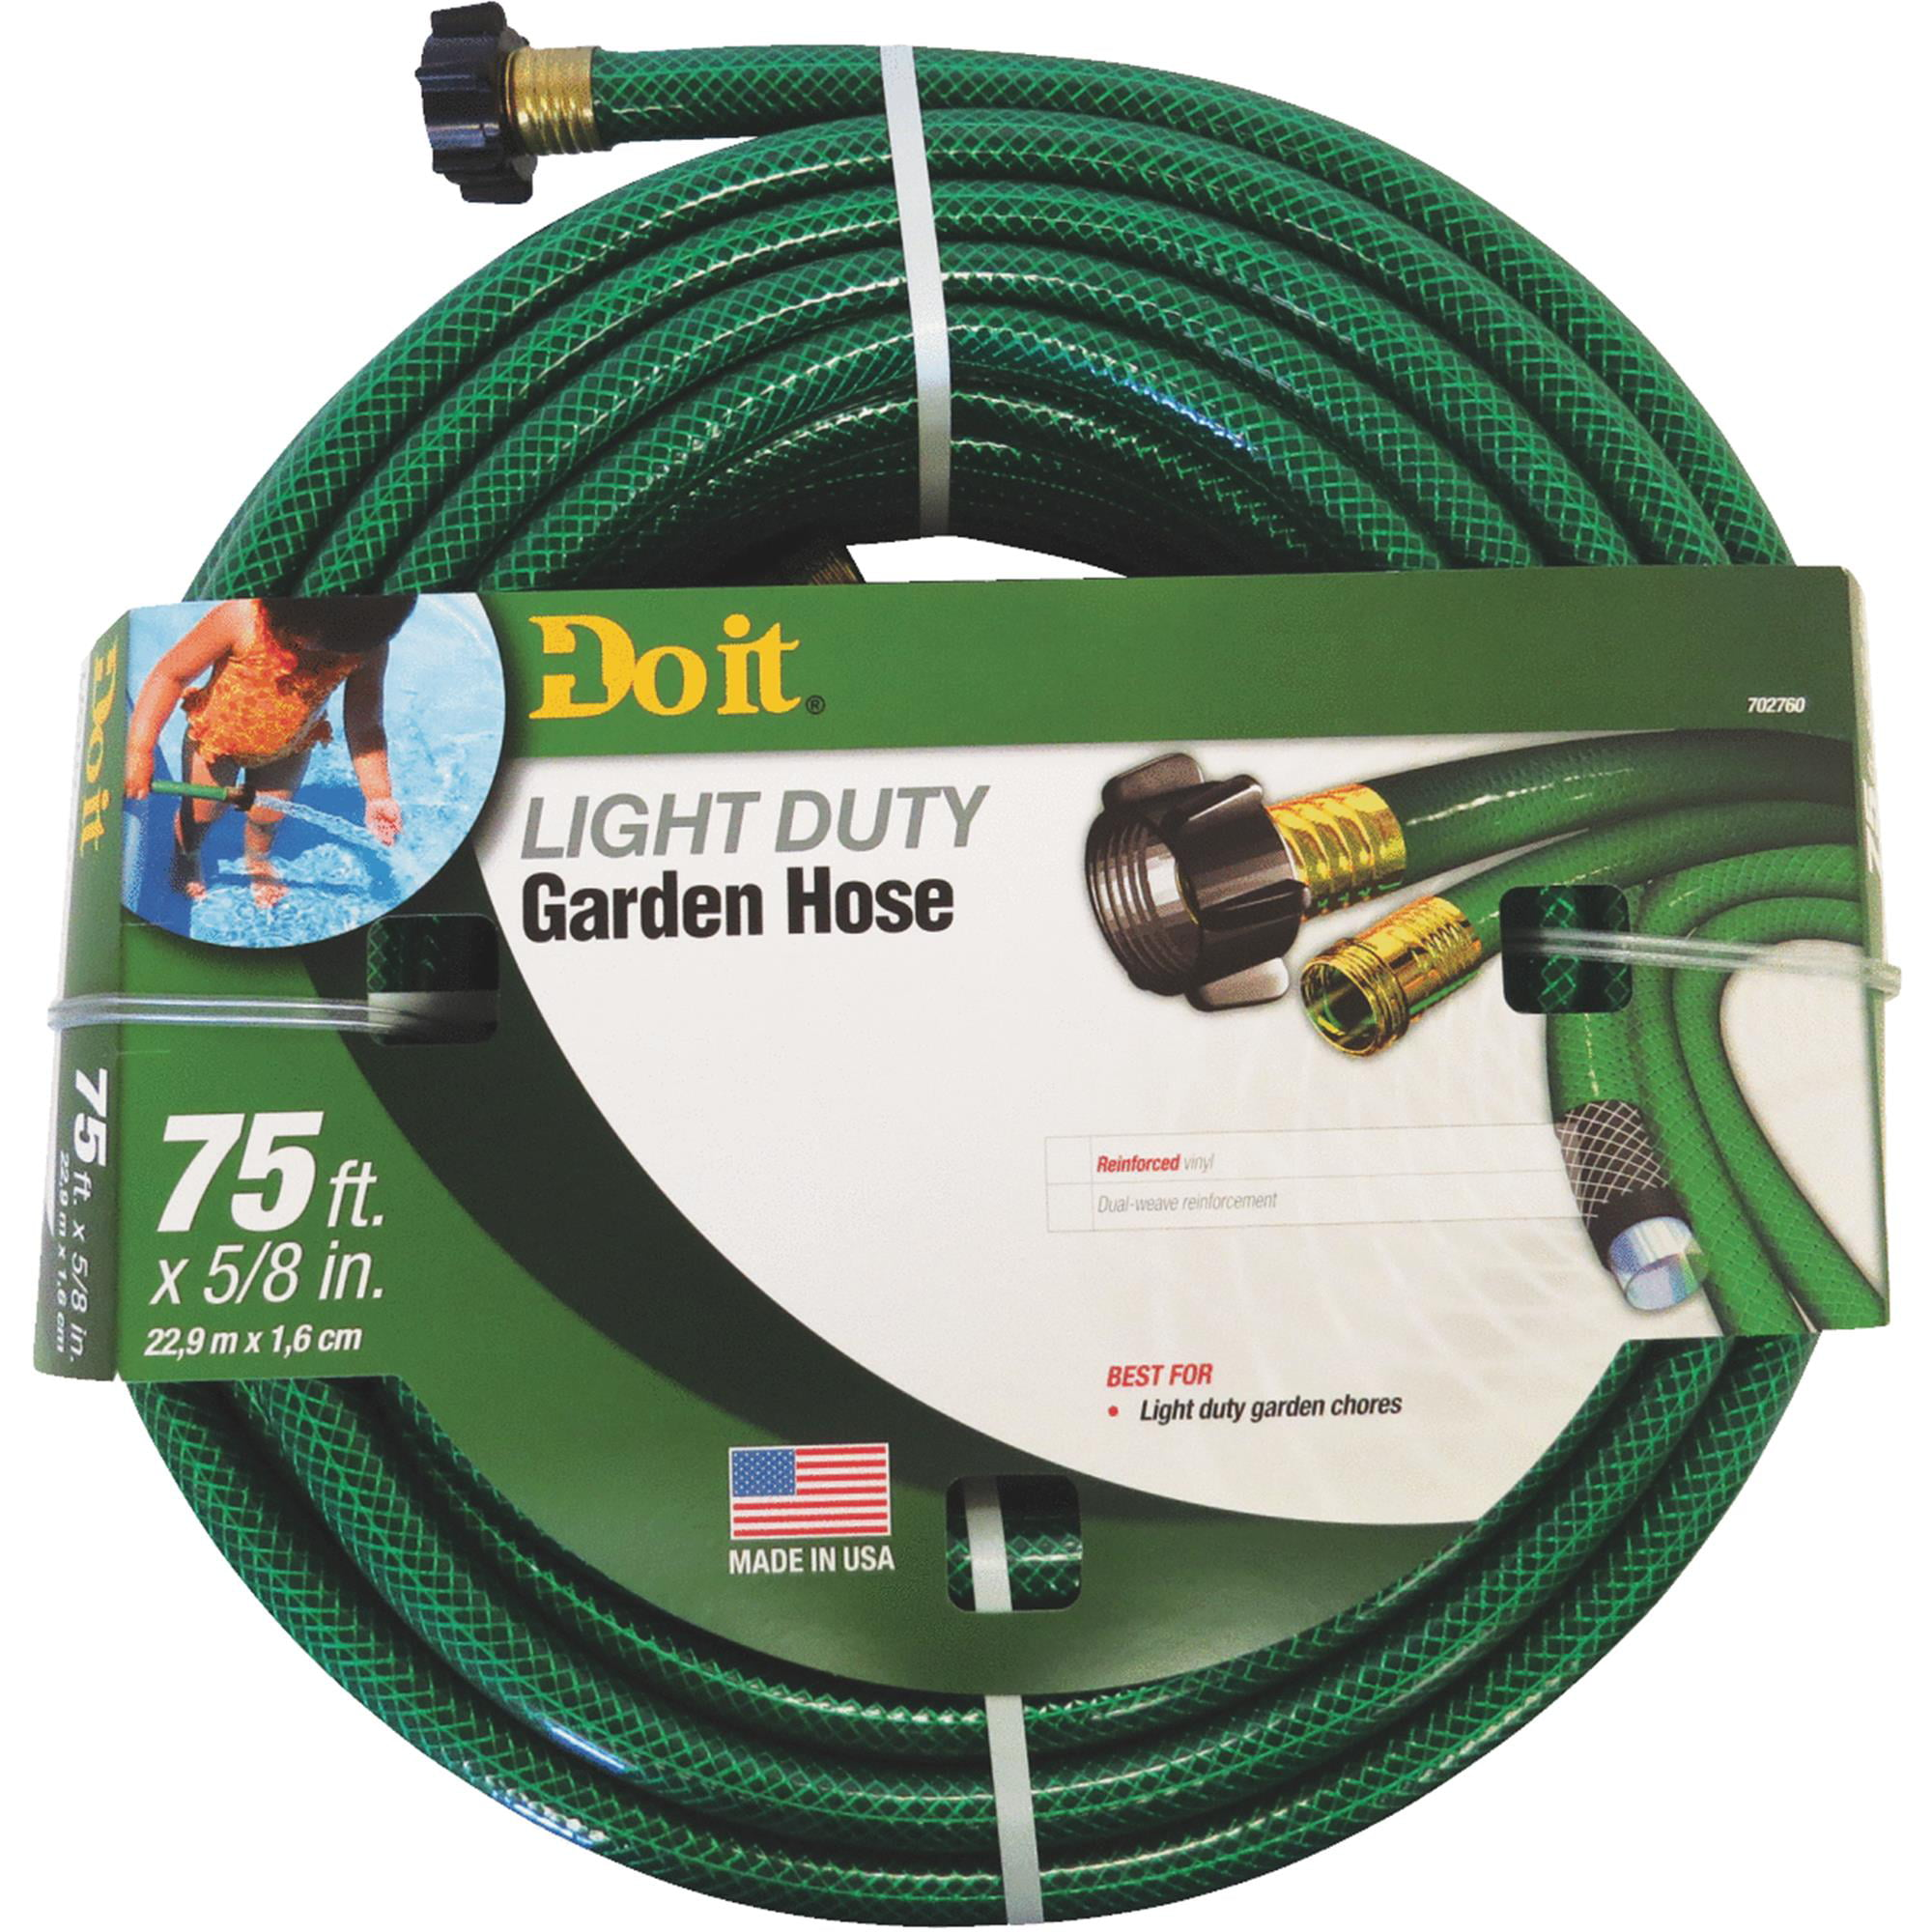 Best Garden Light-Duty 200 PSI Garden Hose by Swan Products Llc